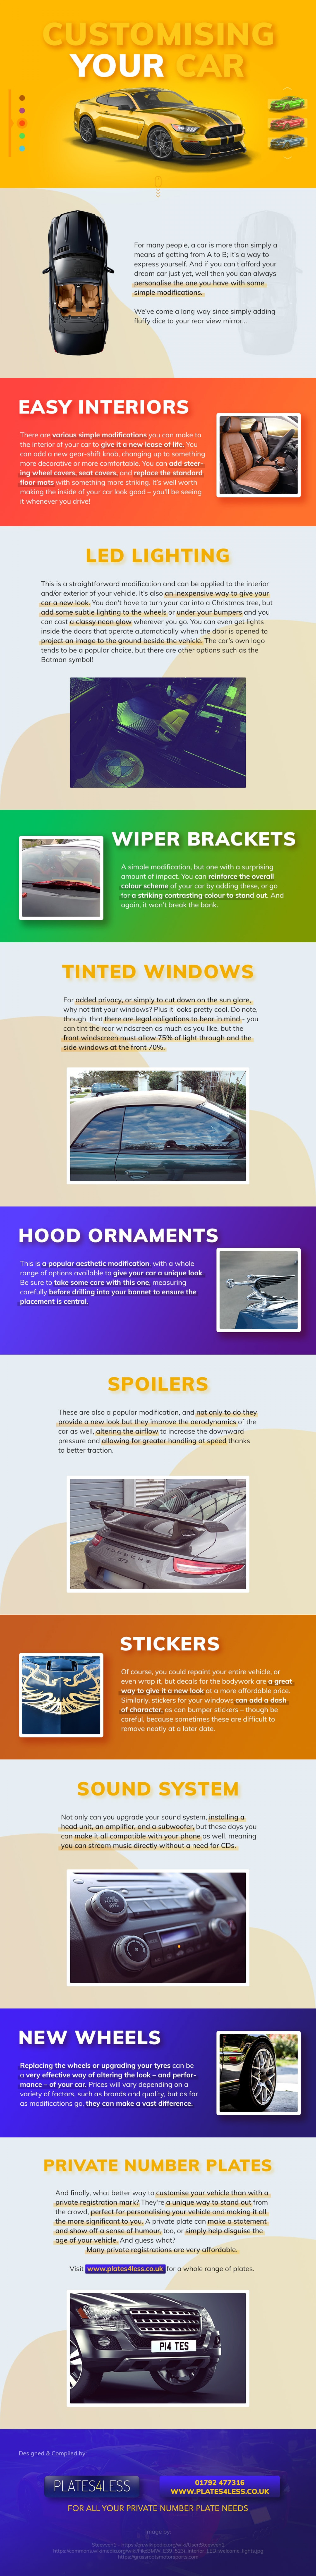 Customising Your Car Infographic